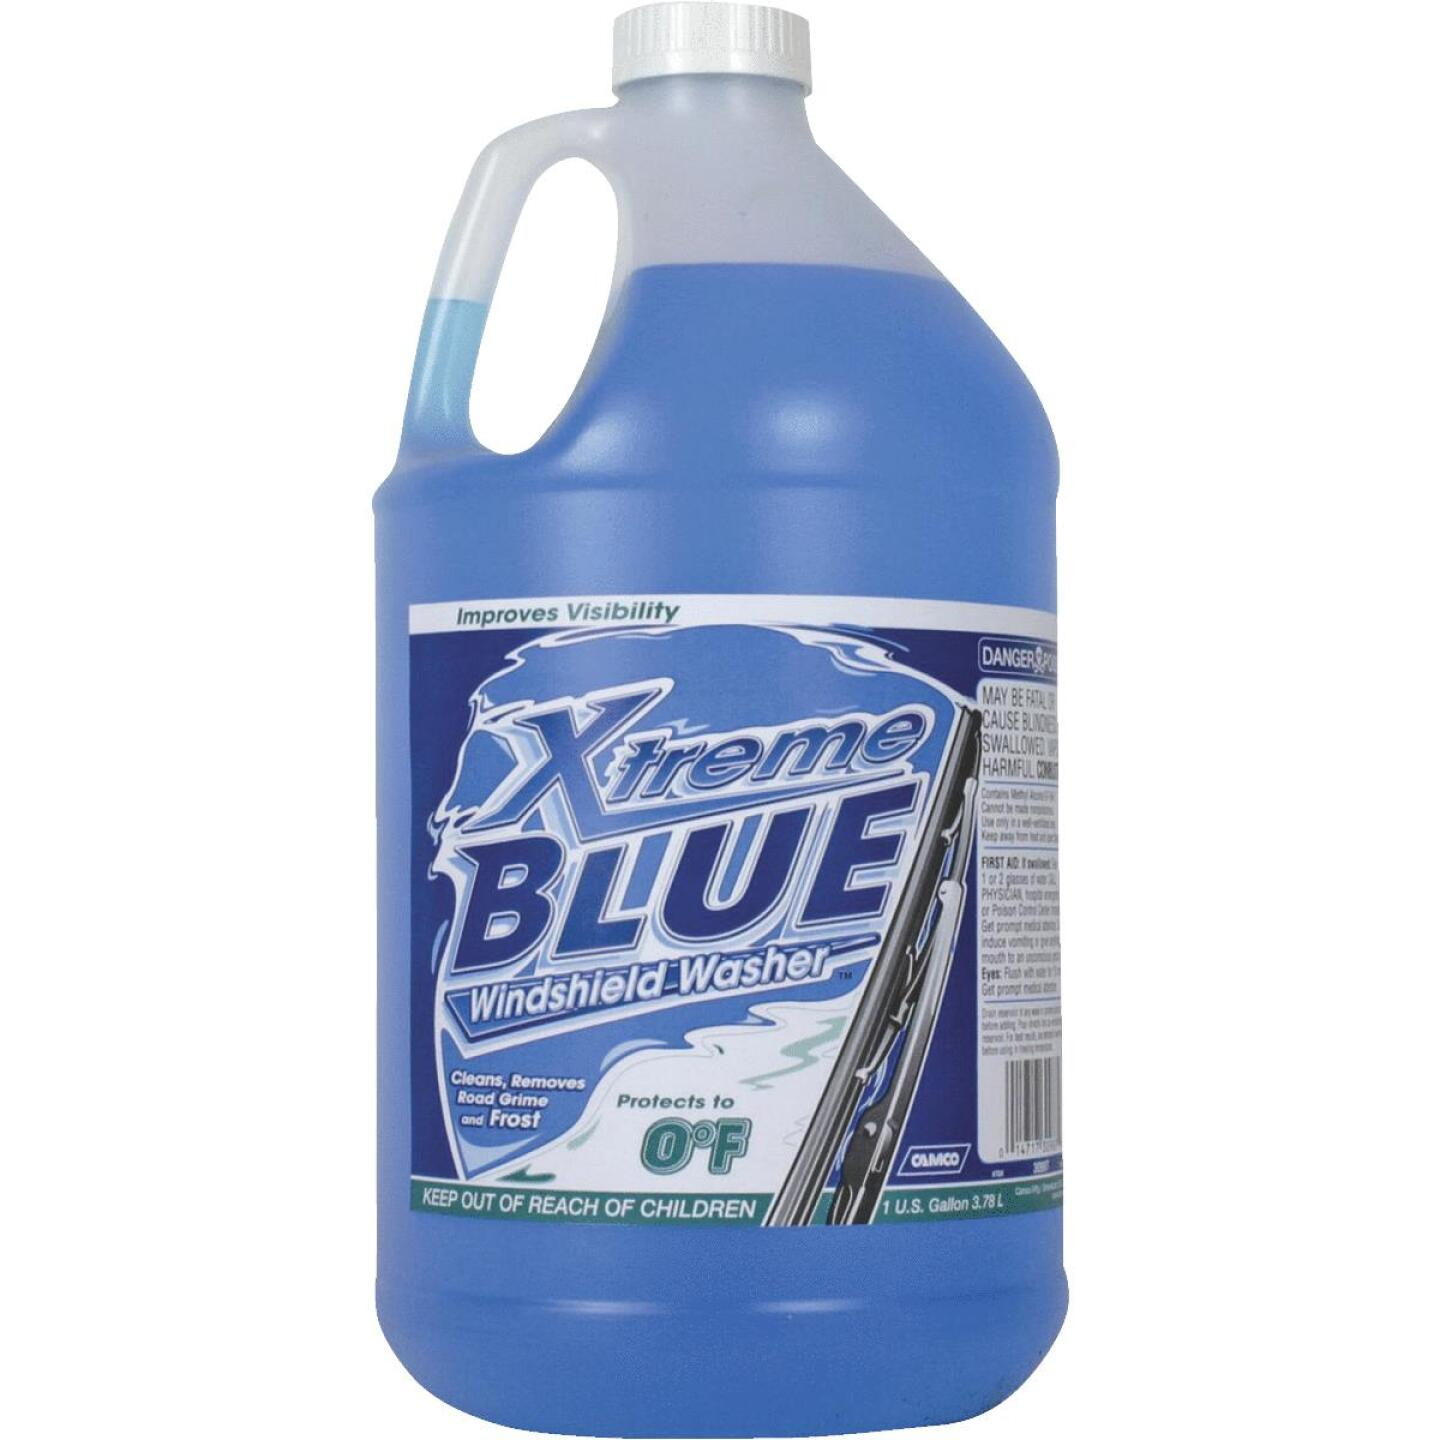 Camco Xtreme Blue 1 Gal. 0 Deg F Temperature Rating Windshield Washer Fluid with Antifreeze Image 1